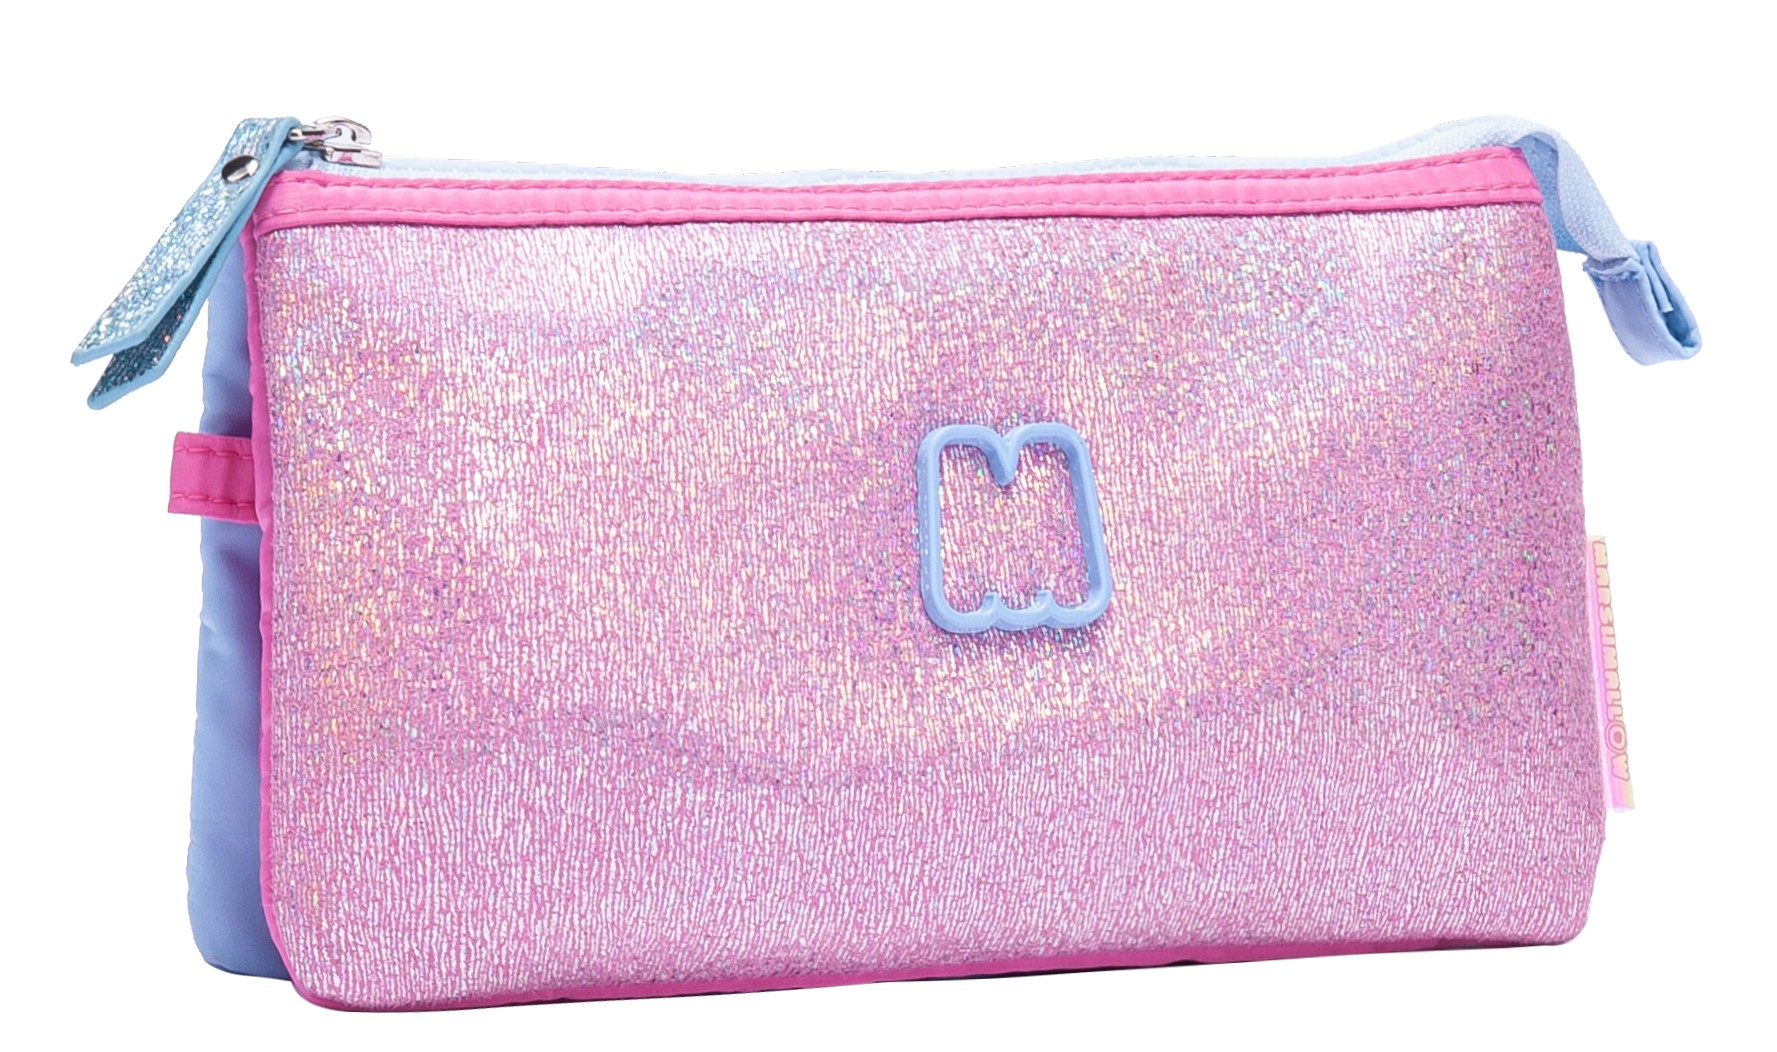 Trousse rectangulaire MARSHMALLOW Sparkly blue - 3 compartiments - Kid'Abord